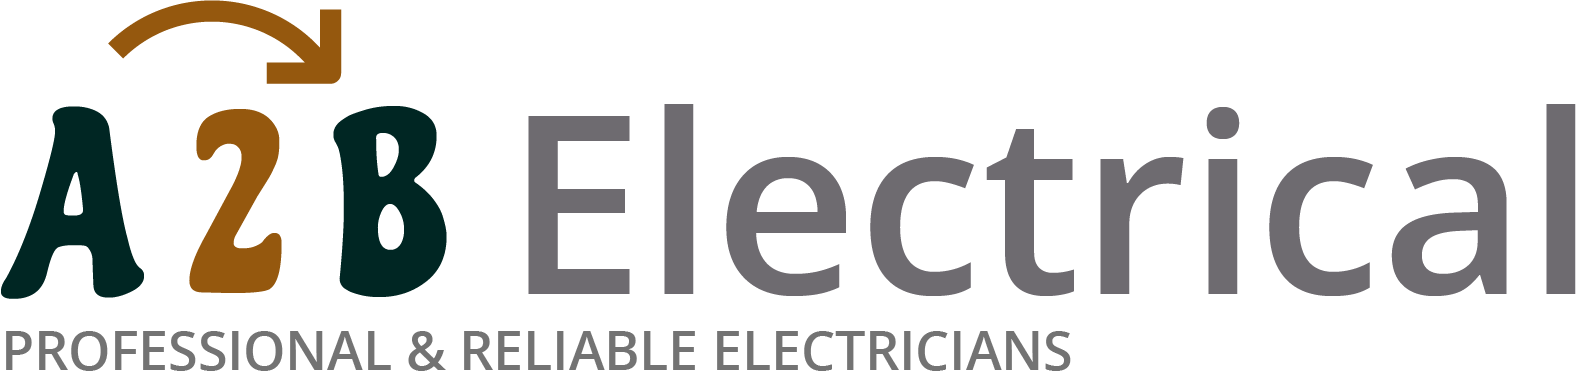 If you have electrical wiring problems in Blackheath, we can provide an electrician to have a look for you.